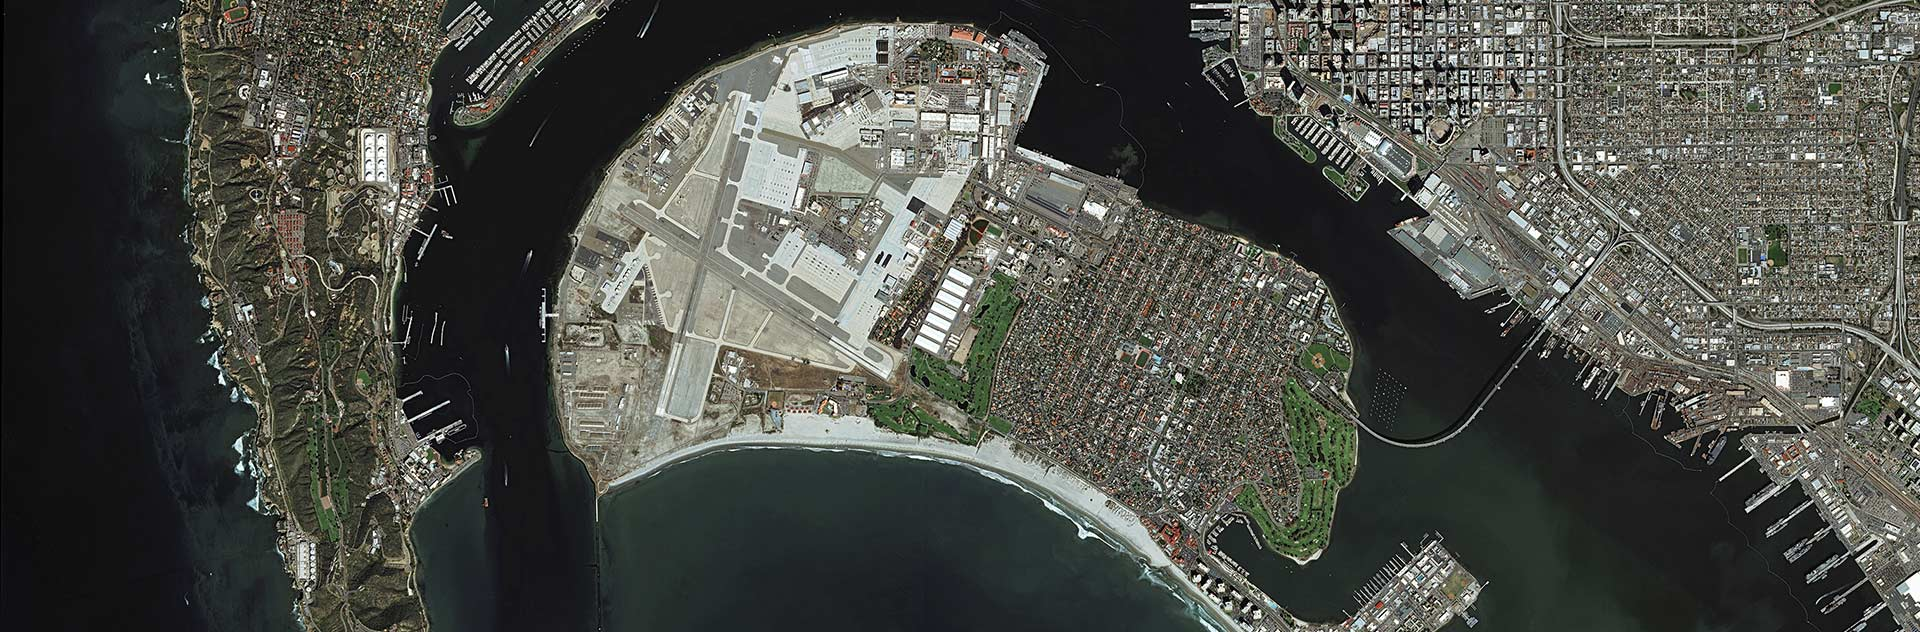 Monitoring of San Diego harbour activities on a parking lot where new cars are offloaded and stored, before moving them across the US for delivery